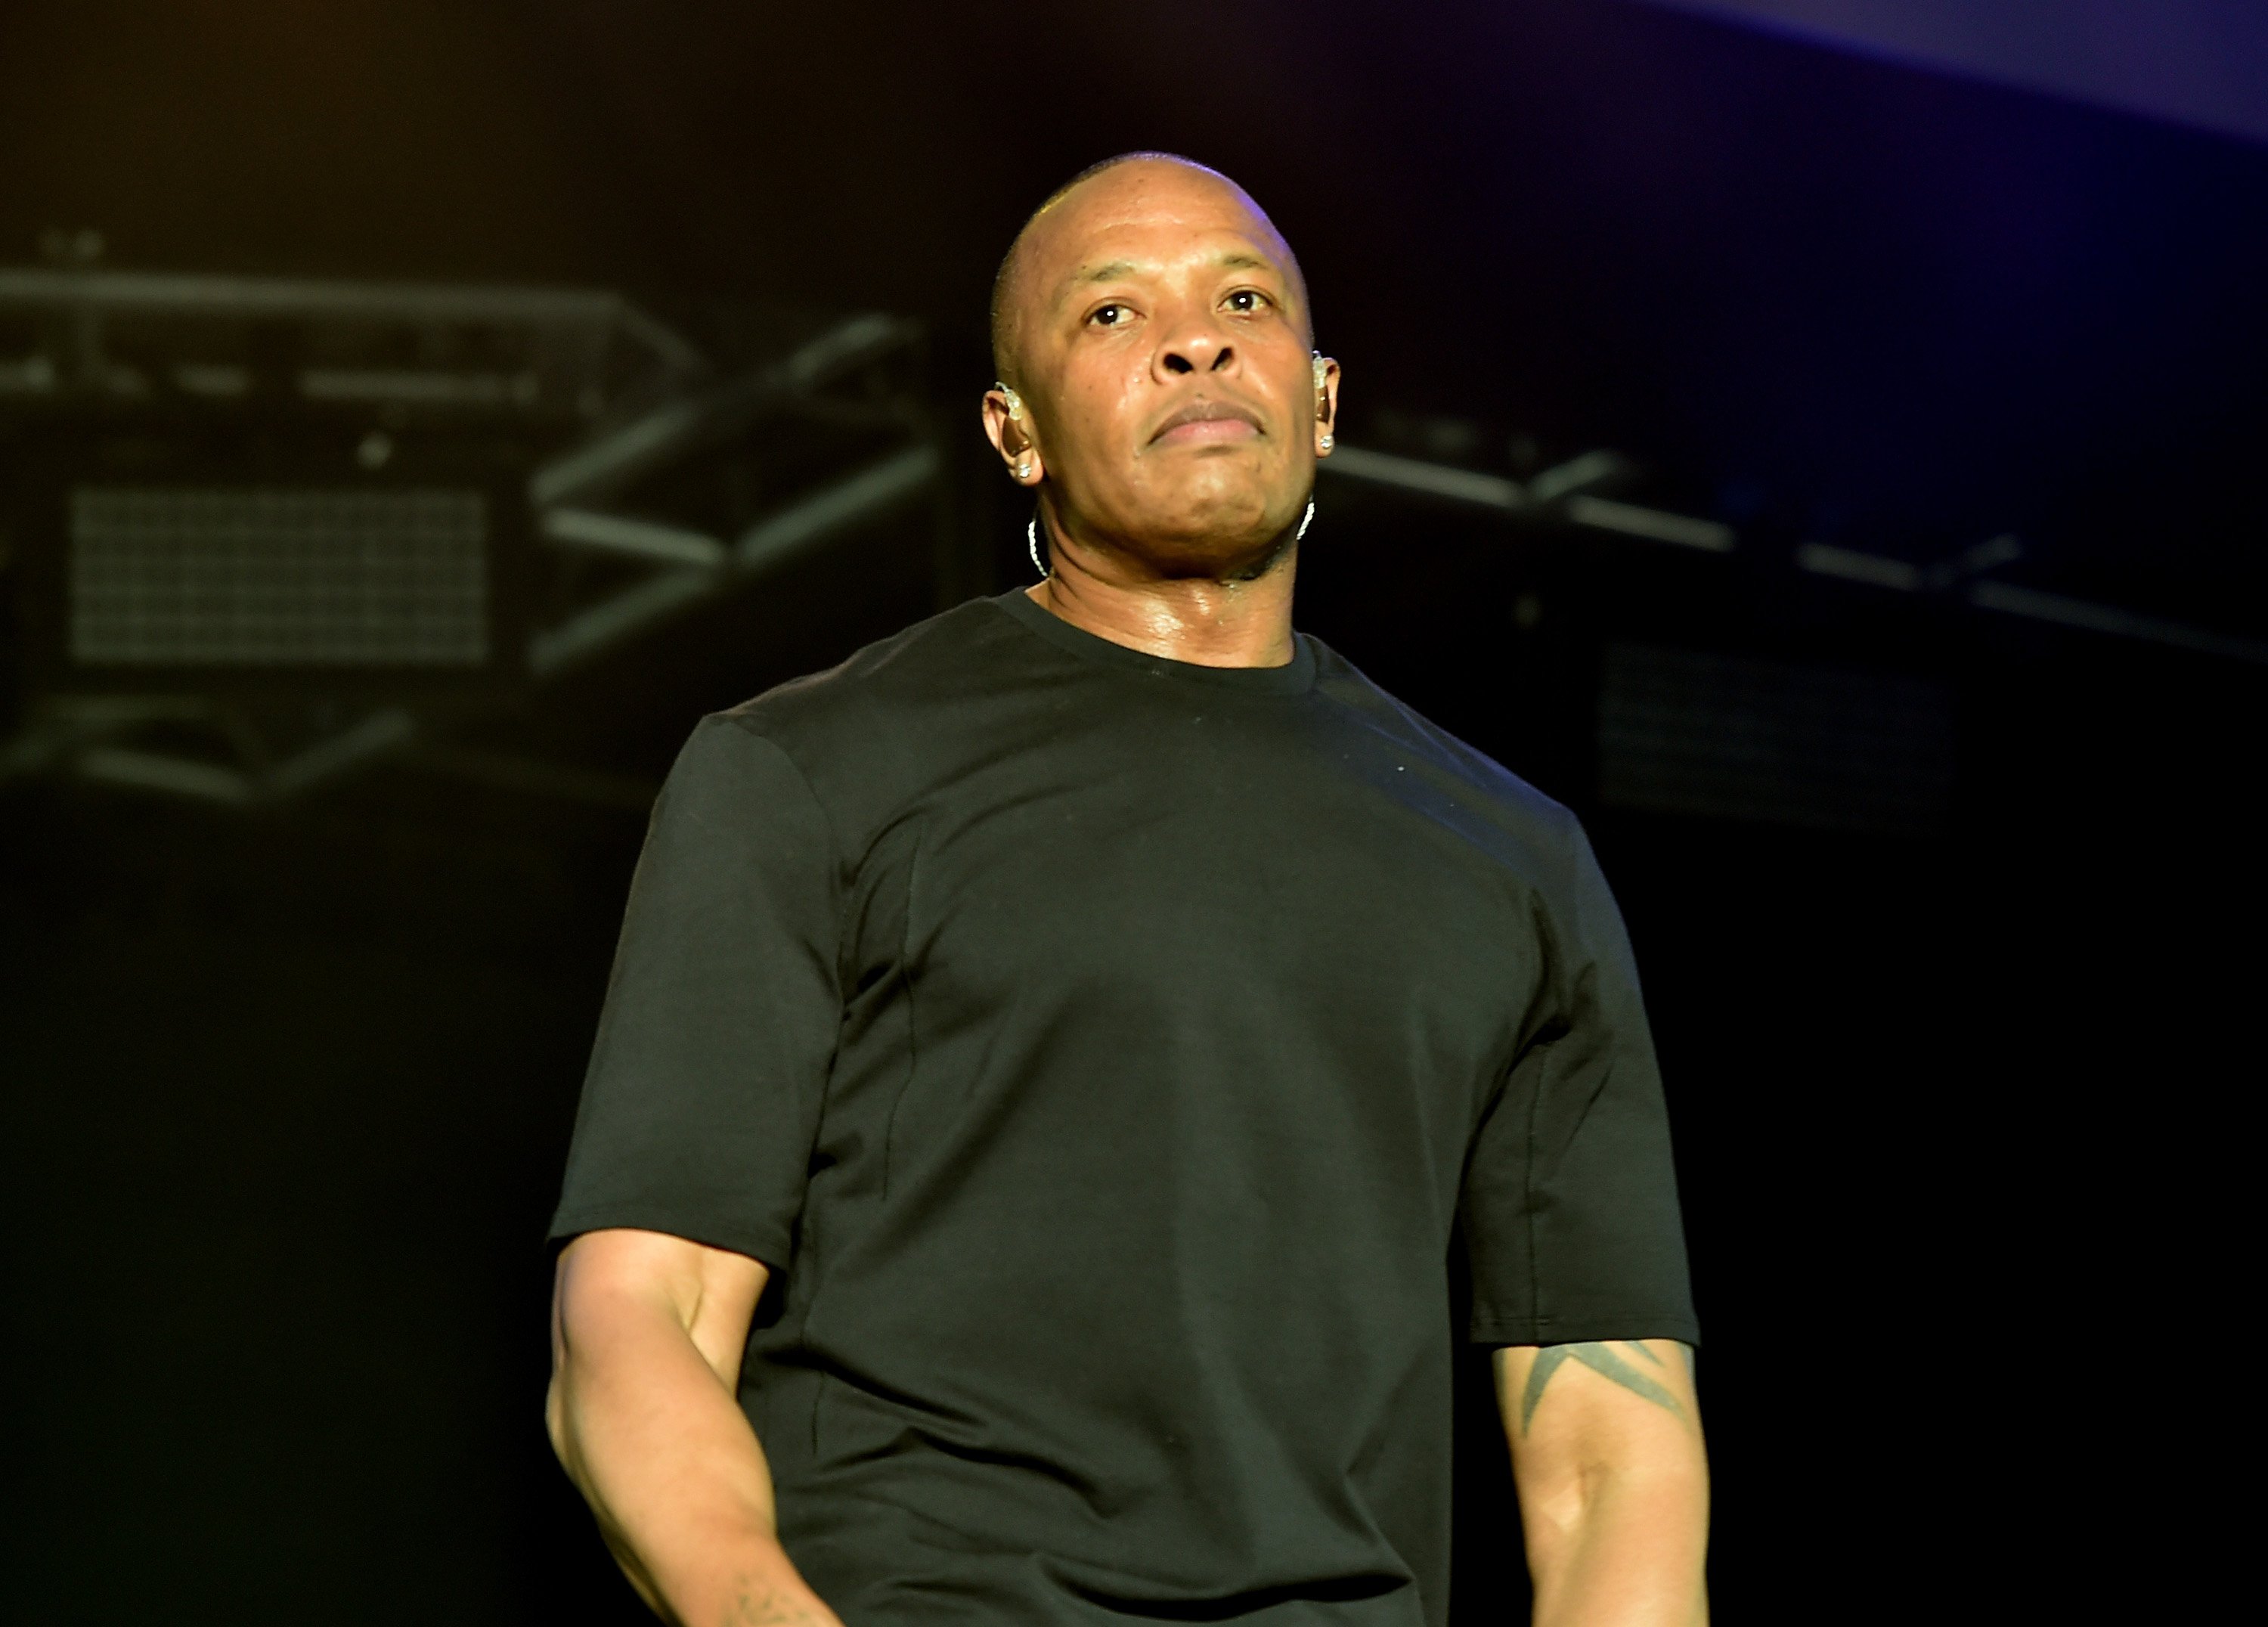 Recording artist Dr. Dre  performs onstage during day 2 of the 2016 Coachella Valley Music & Arts Festival Weekend 2 at the Empire Polo Club on April 23, 2016 in Indio, California.